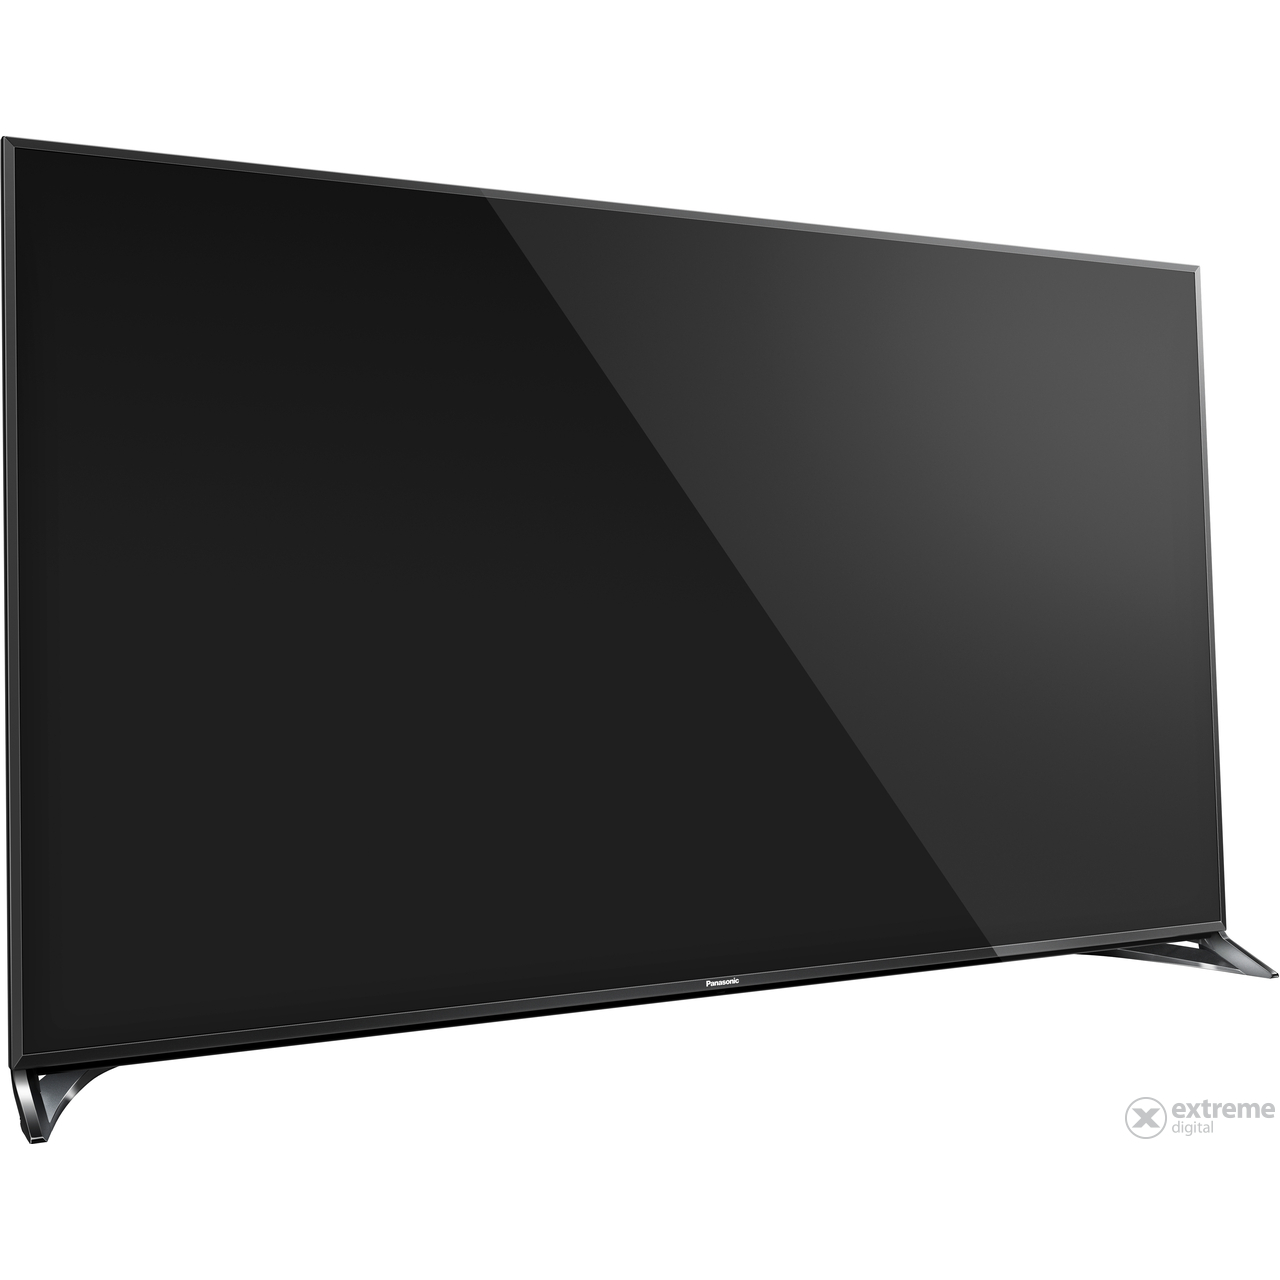 panasonic-tx-40cx800e-uhd-3d-smart-led-televizio_41d5ba41.jpg